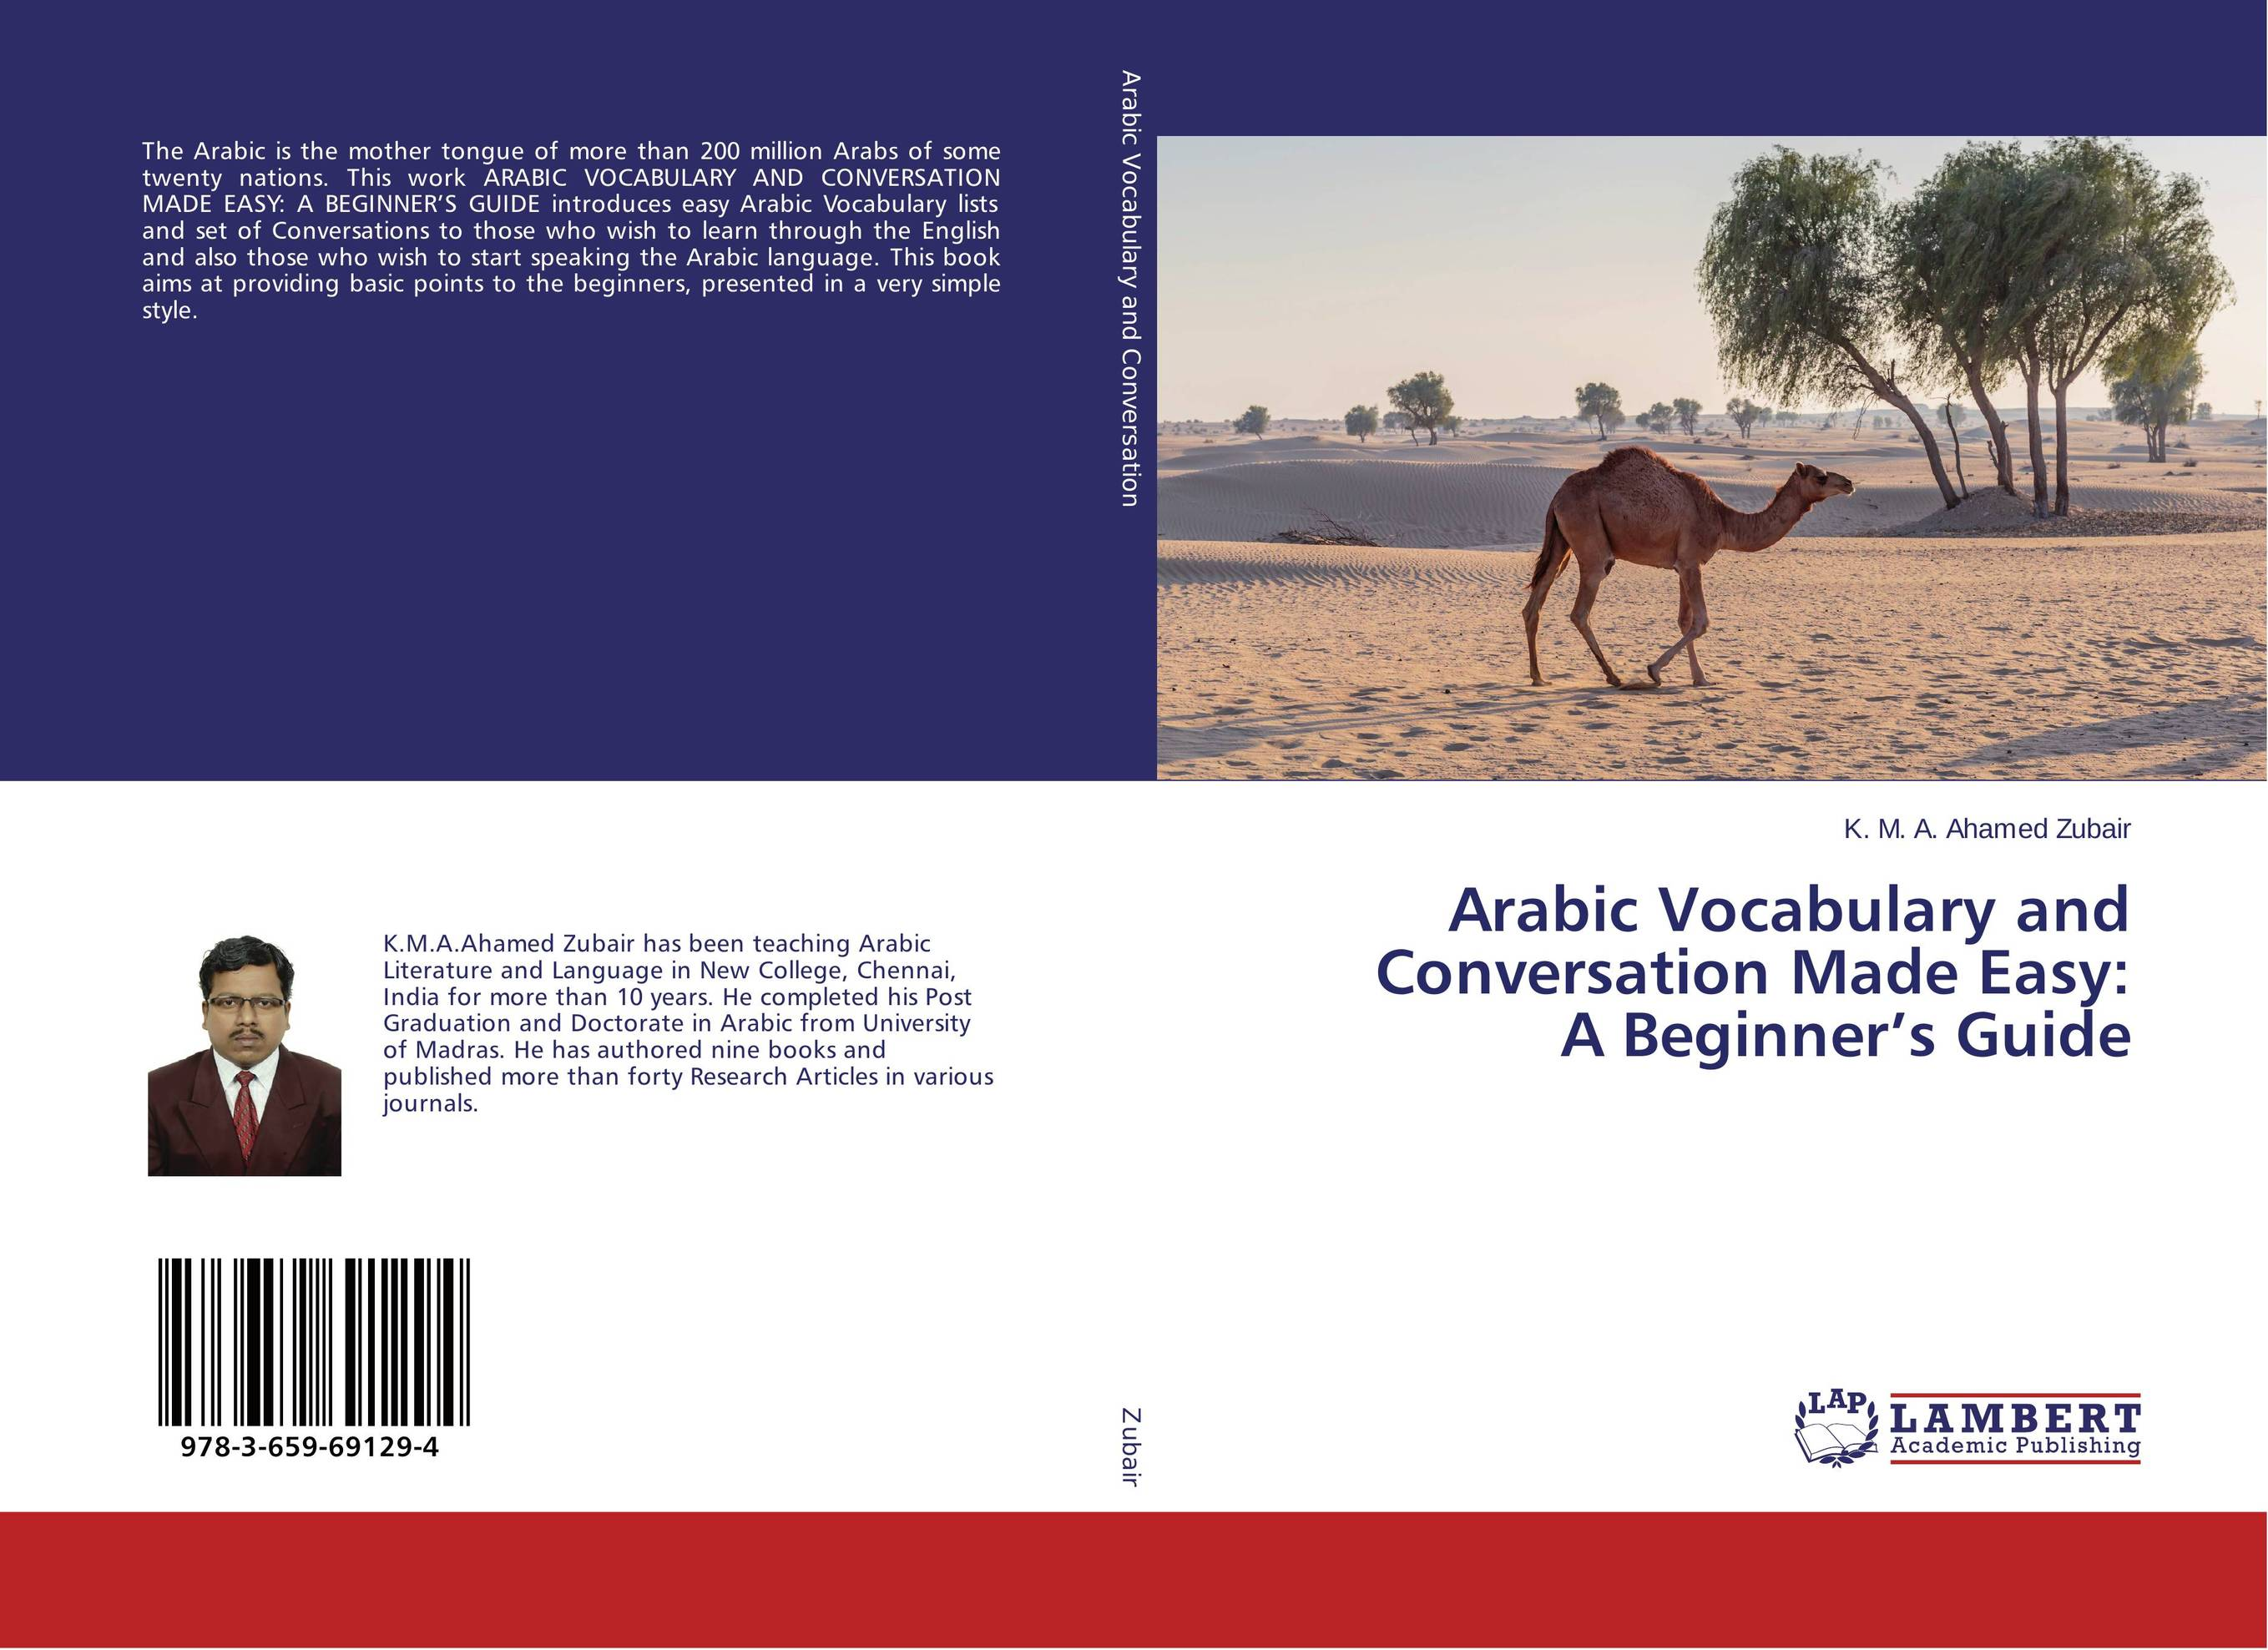 Arabic Vocabulary and Conversation Made Easy: A Beginner's Guide prepositions in english and arabic